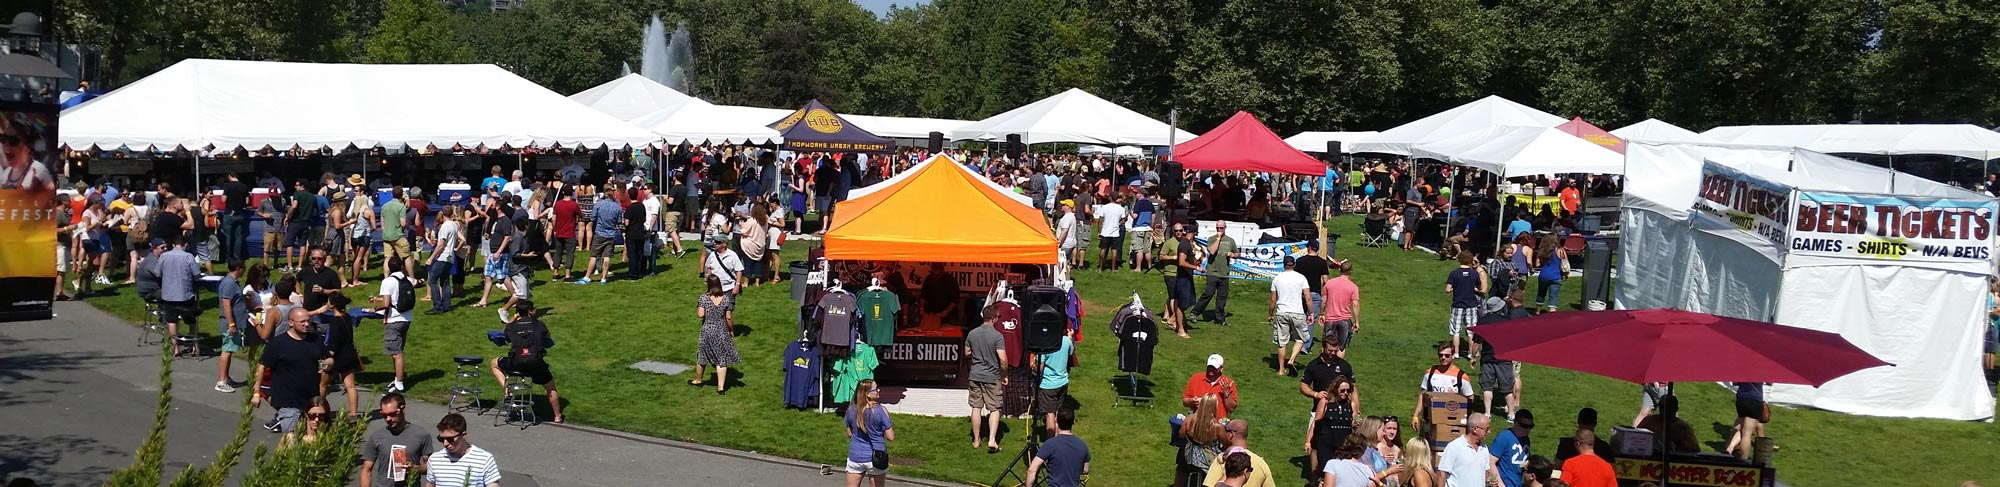 Top 17 Food and Drink Events in Seattle